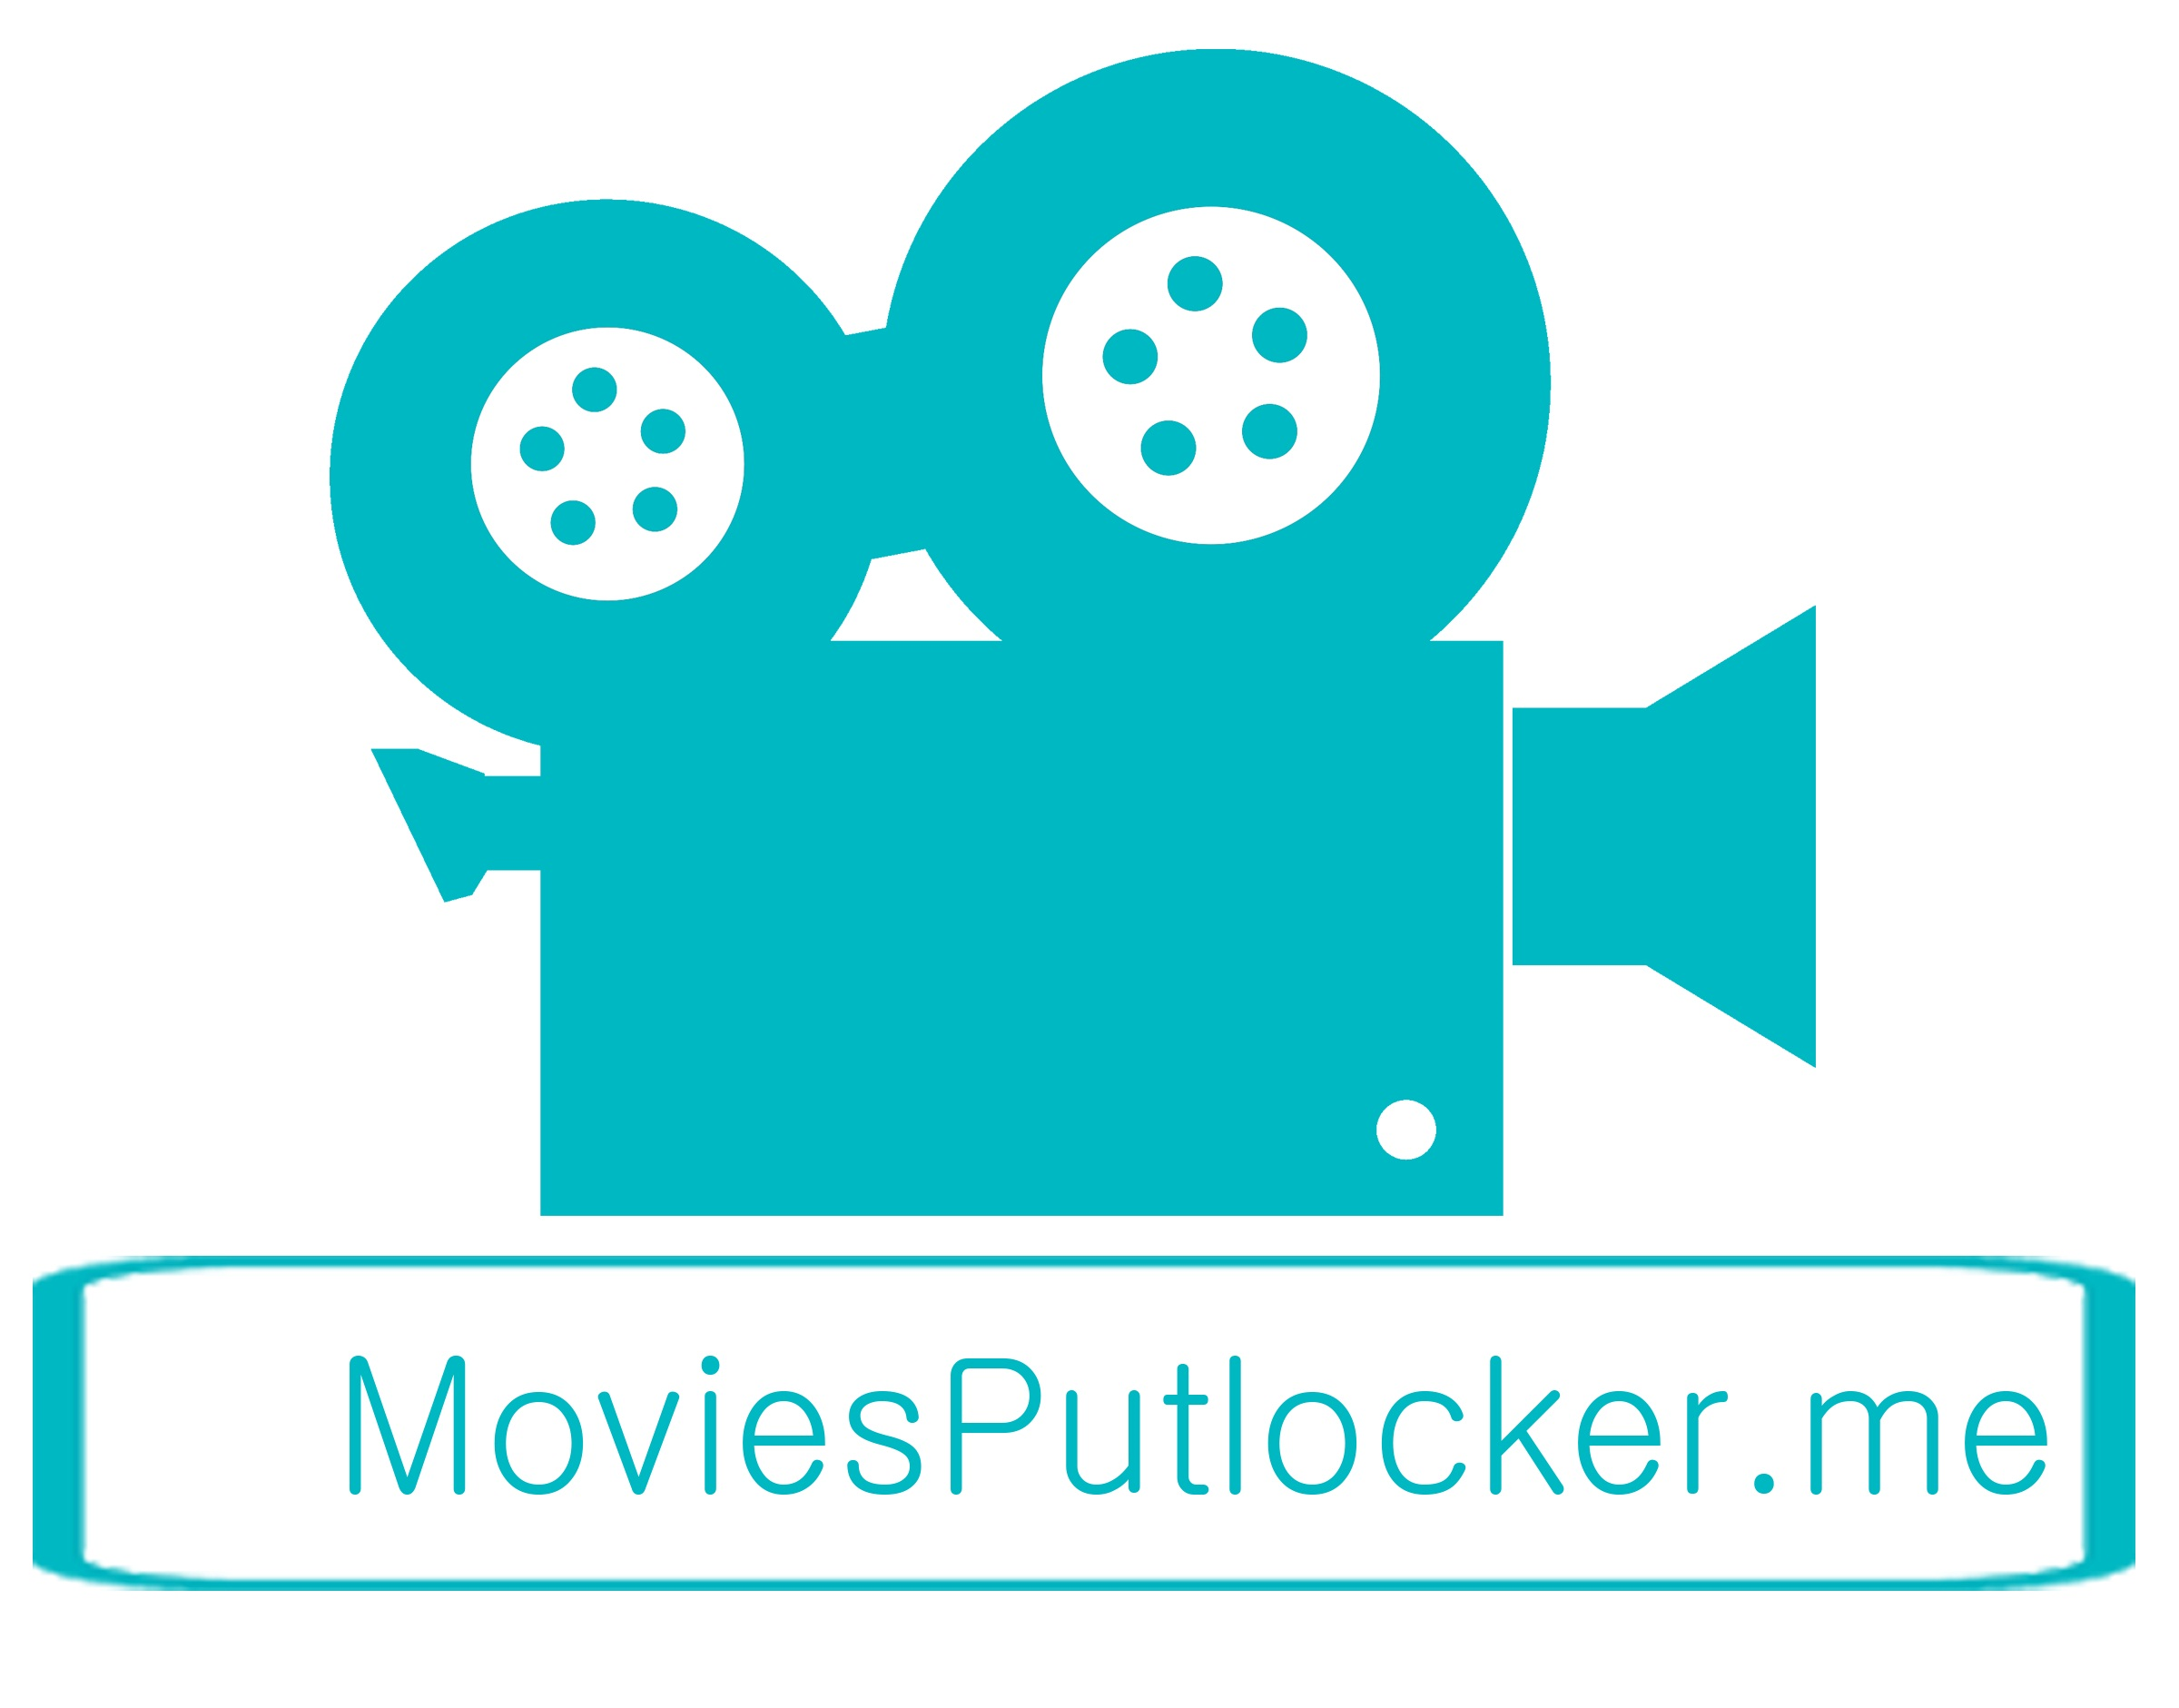 MoviesPutlocker.me